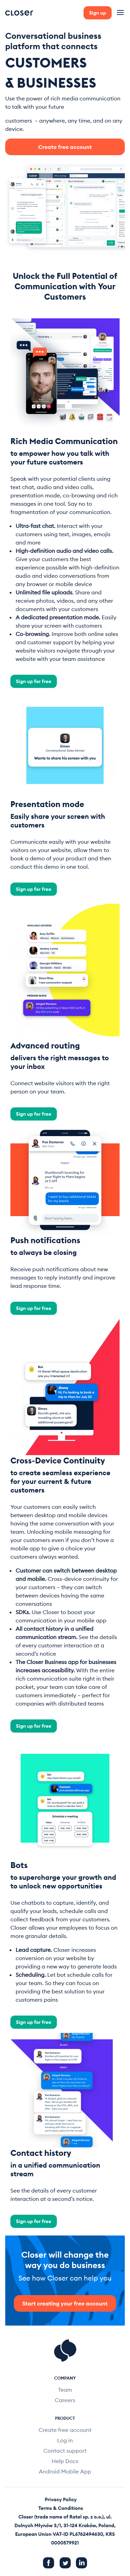 Example of Design for Uncategorized, Mobile Landing Page by closer.app | Mobile Landing Page Design